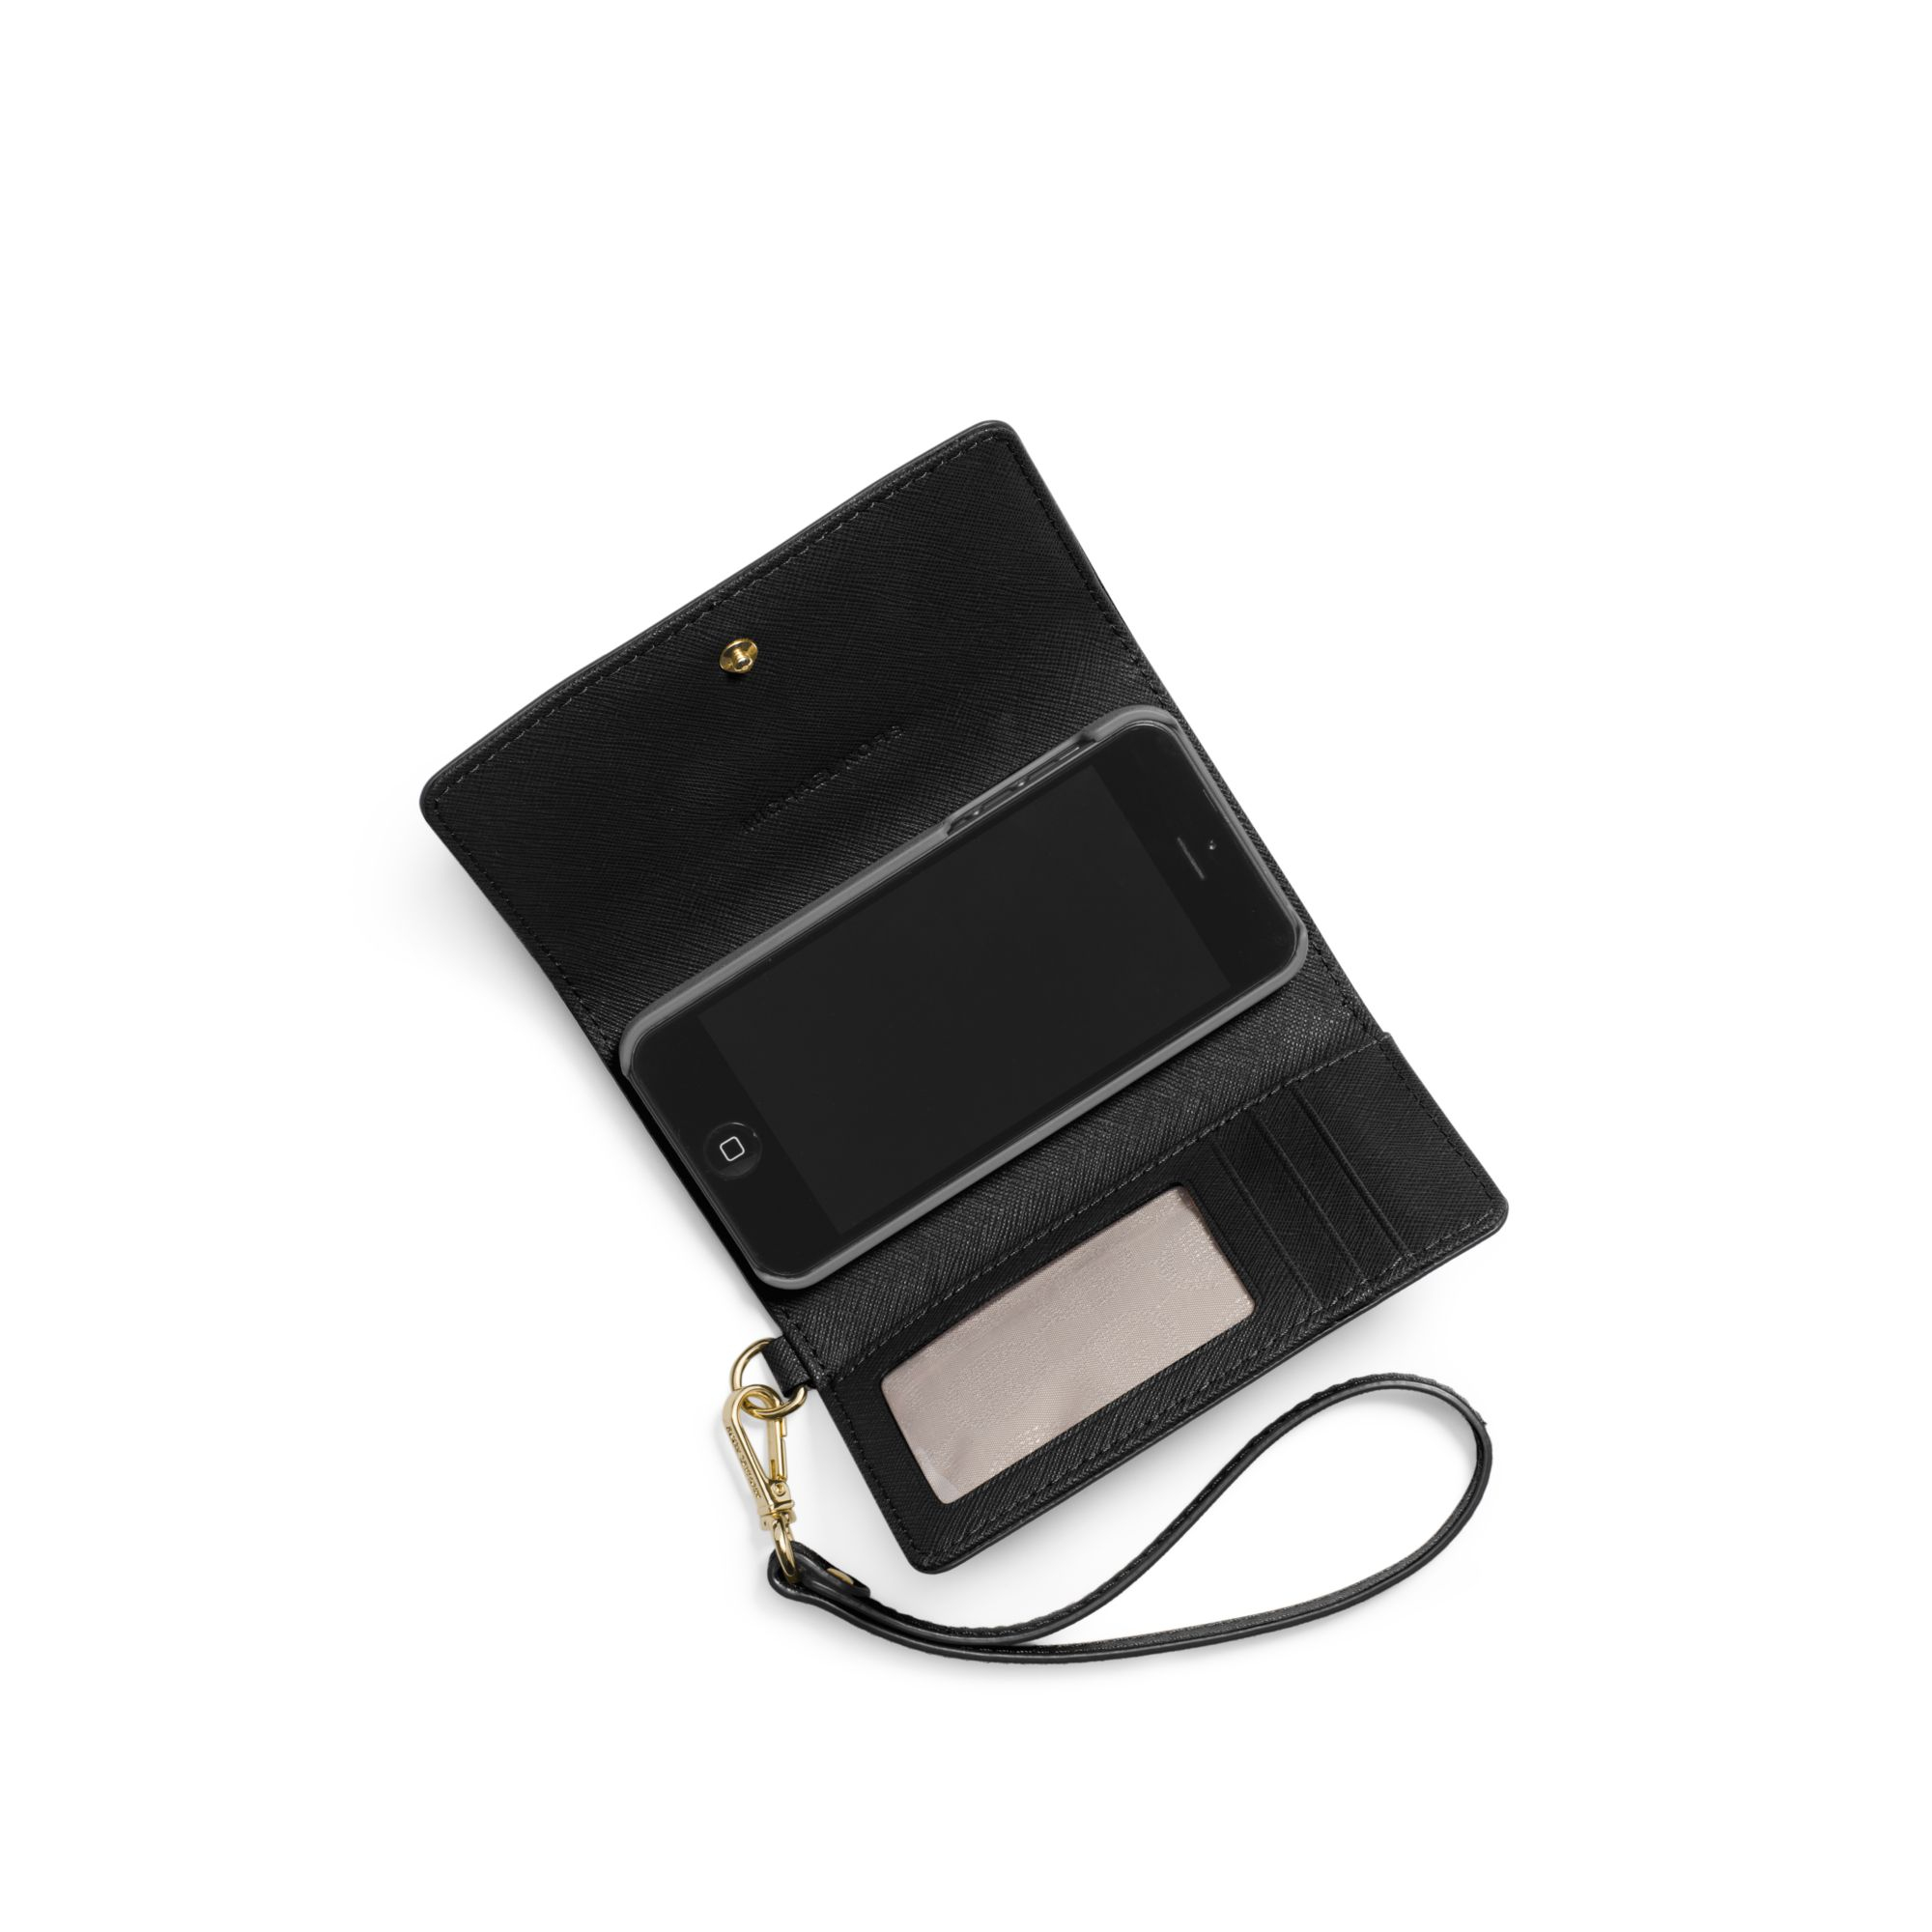 iphone 5 wristlet michael kors saffiano leather smartphone wristlet in black 11067